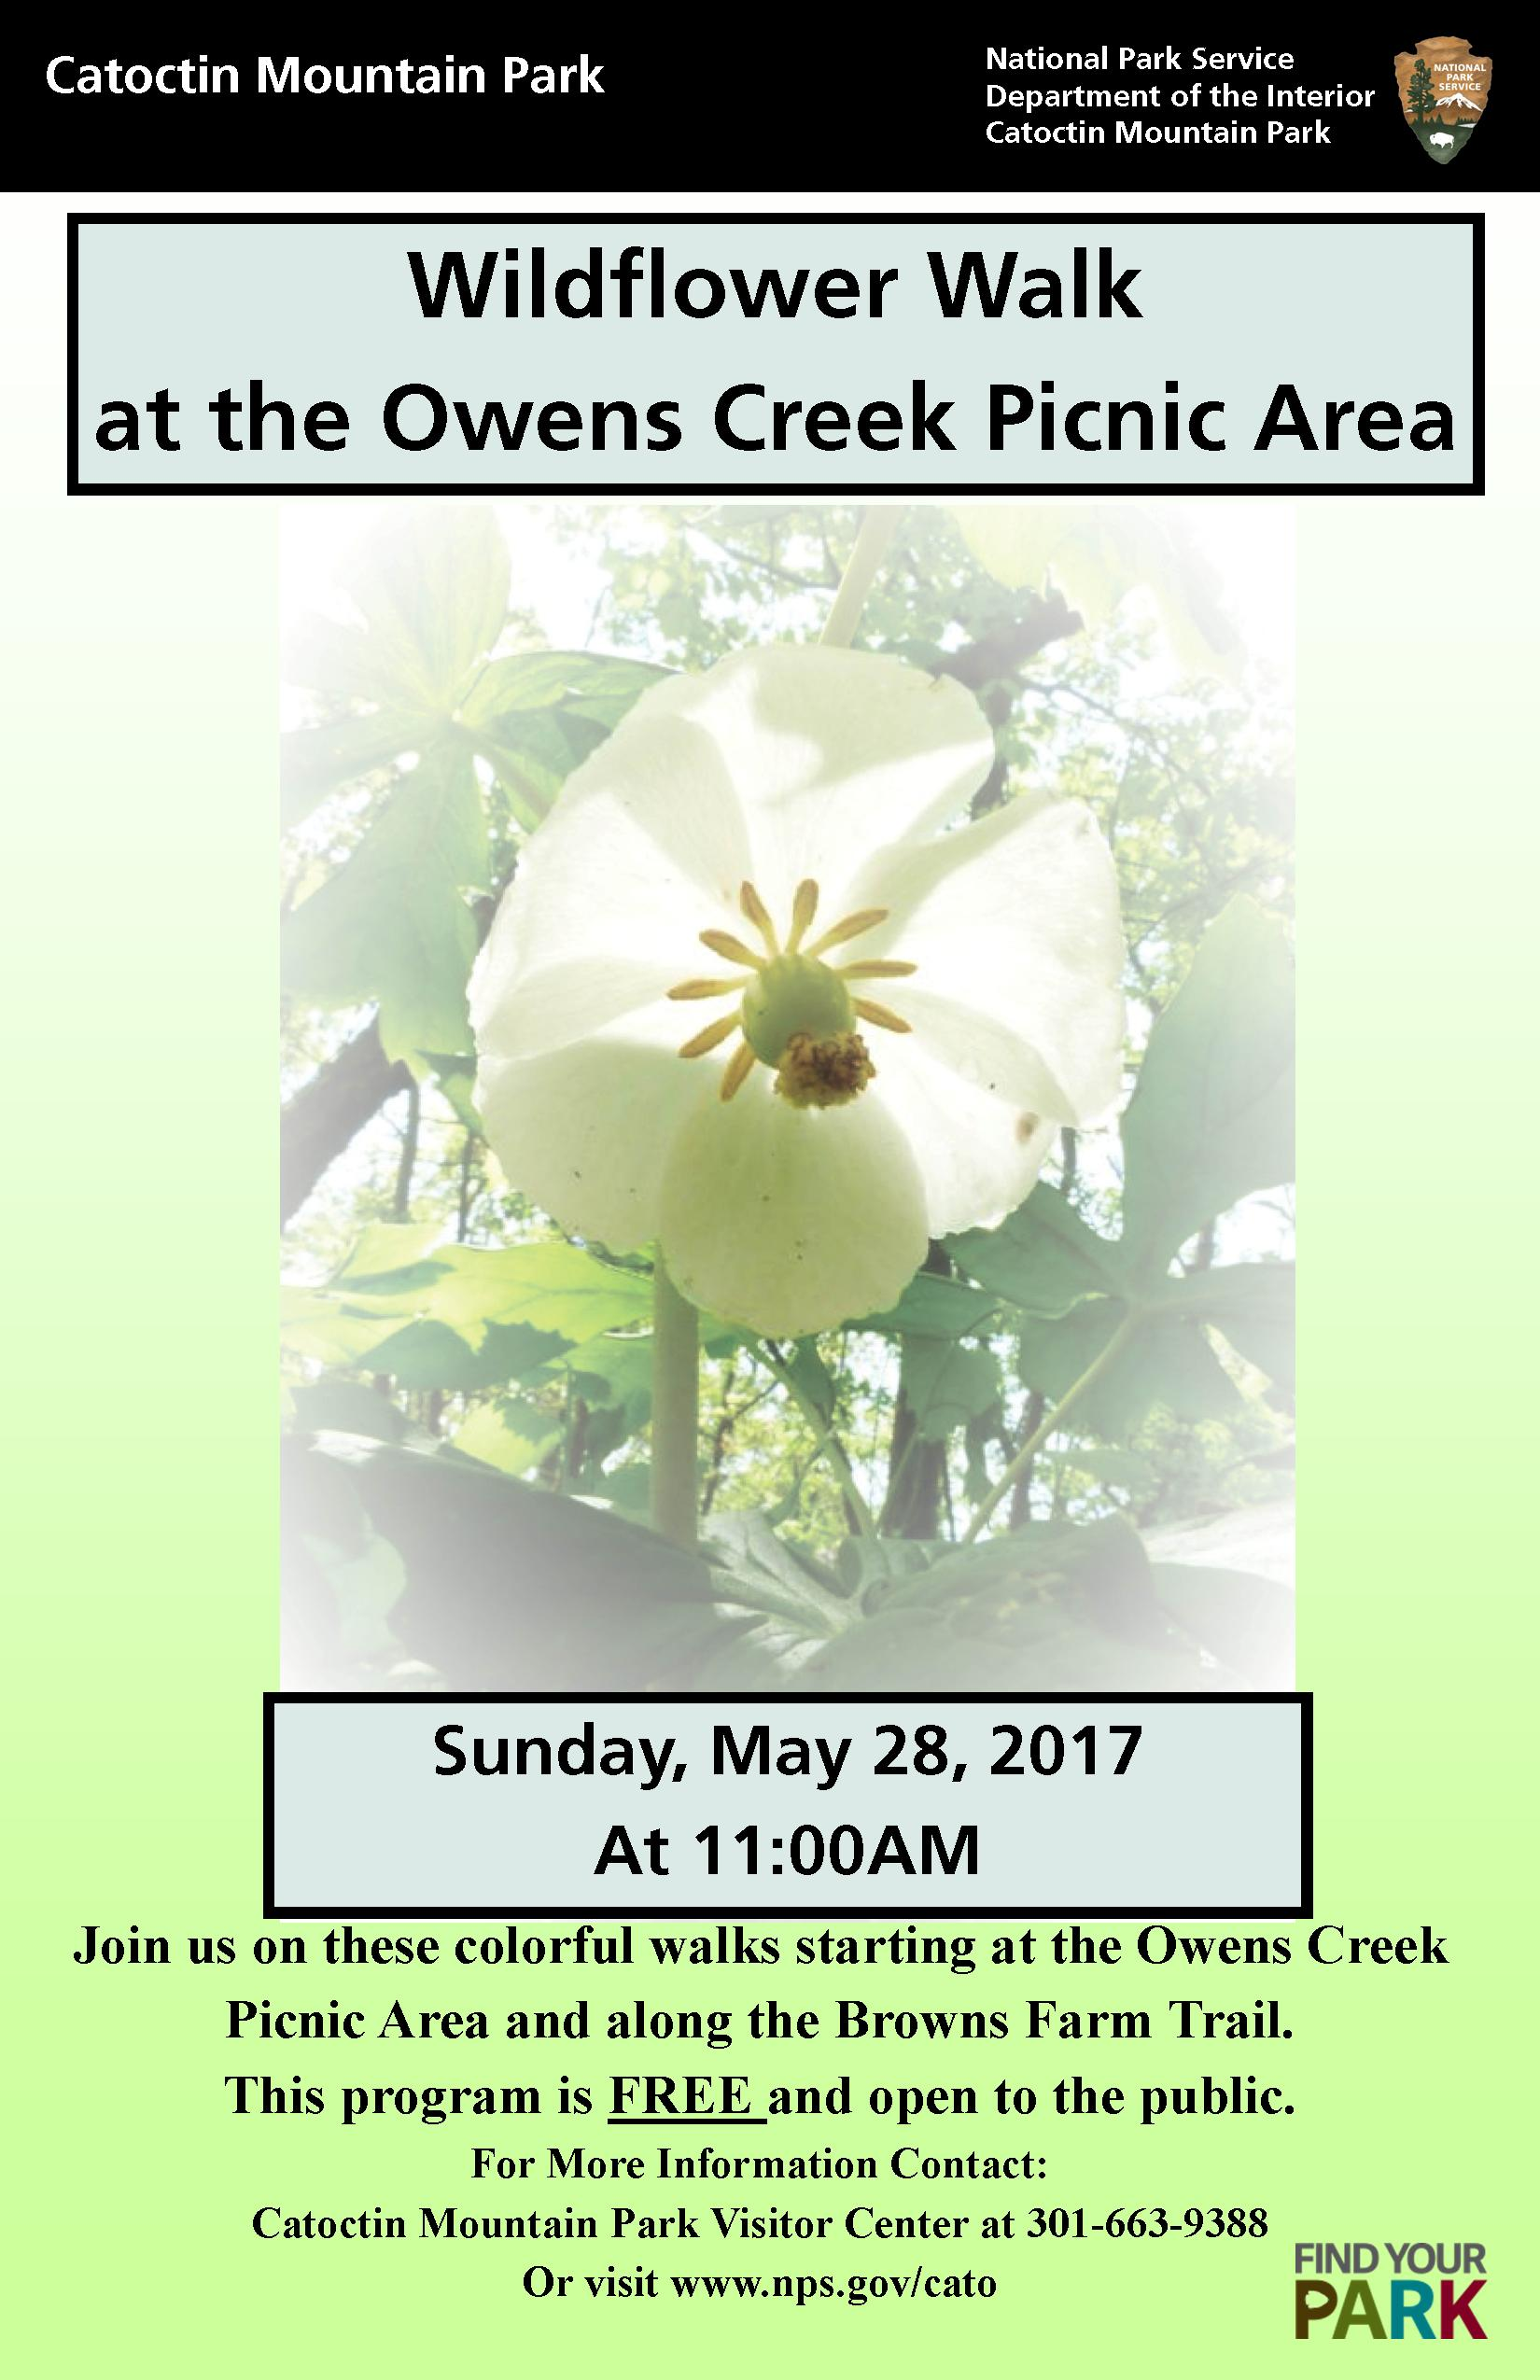 May 28 Wildflower Walk Poster Image